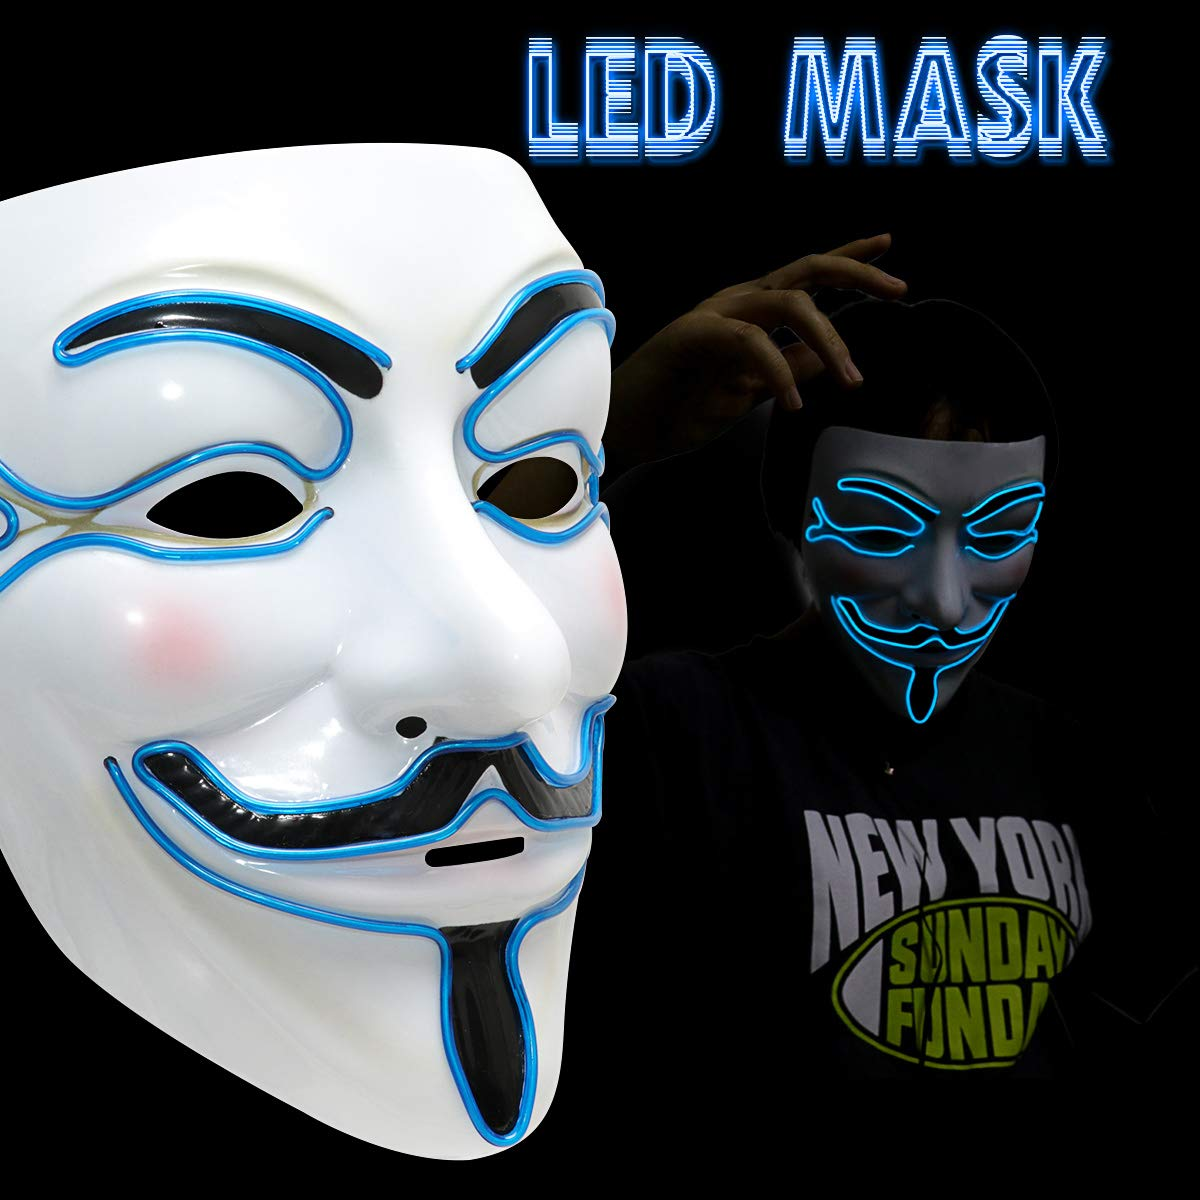 Supmaker Scary Mask Halloween Light Up Mask EL Wire V for Vendetta Cosplay Led Costume Mask Fawkes Anonymous for Festival Parties